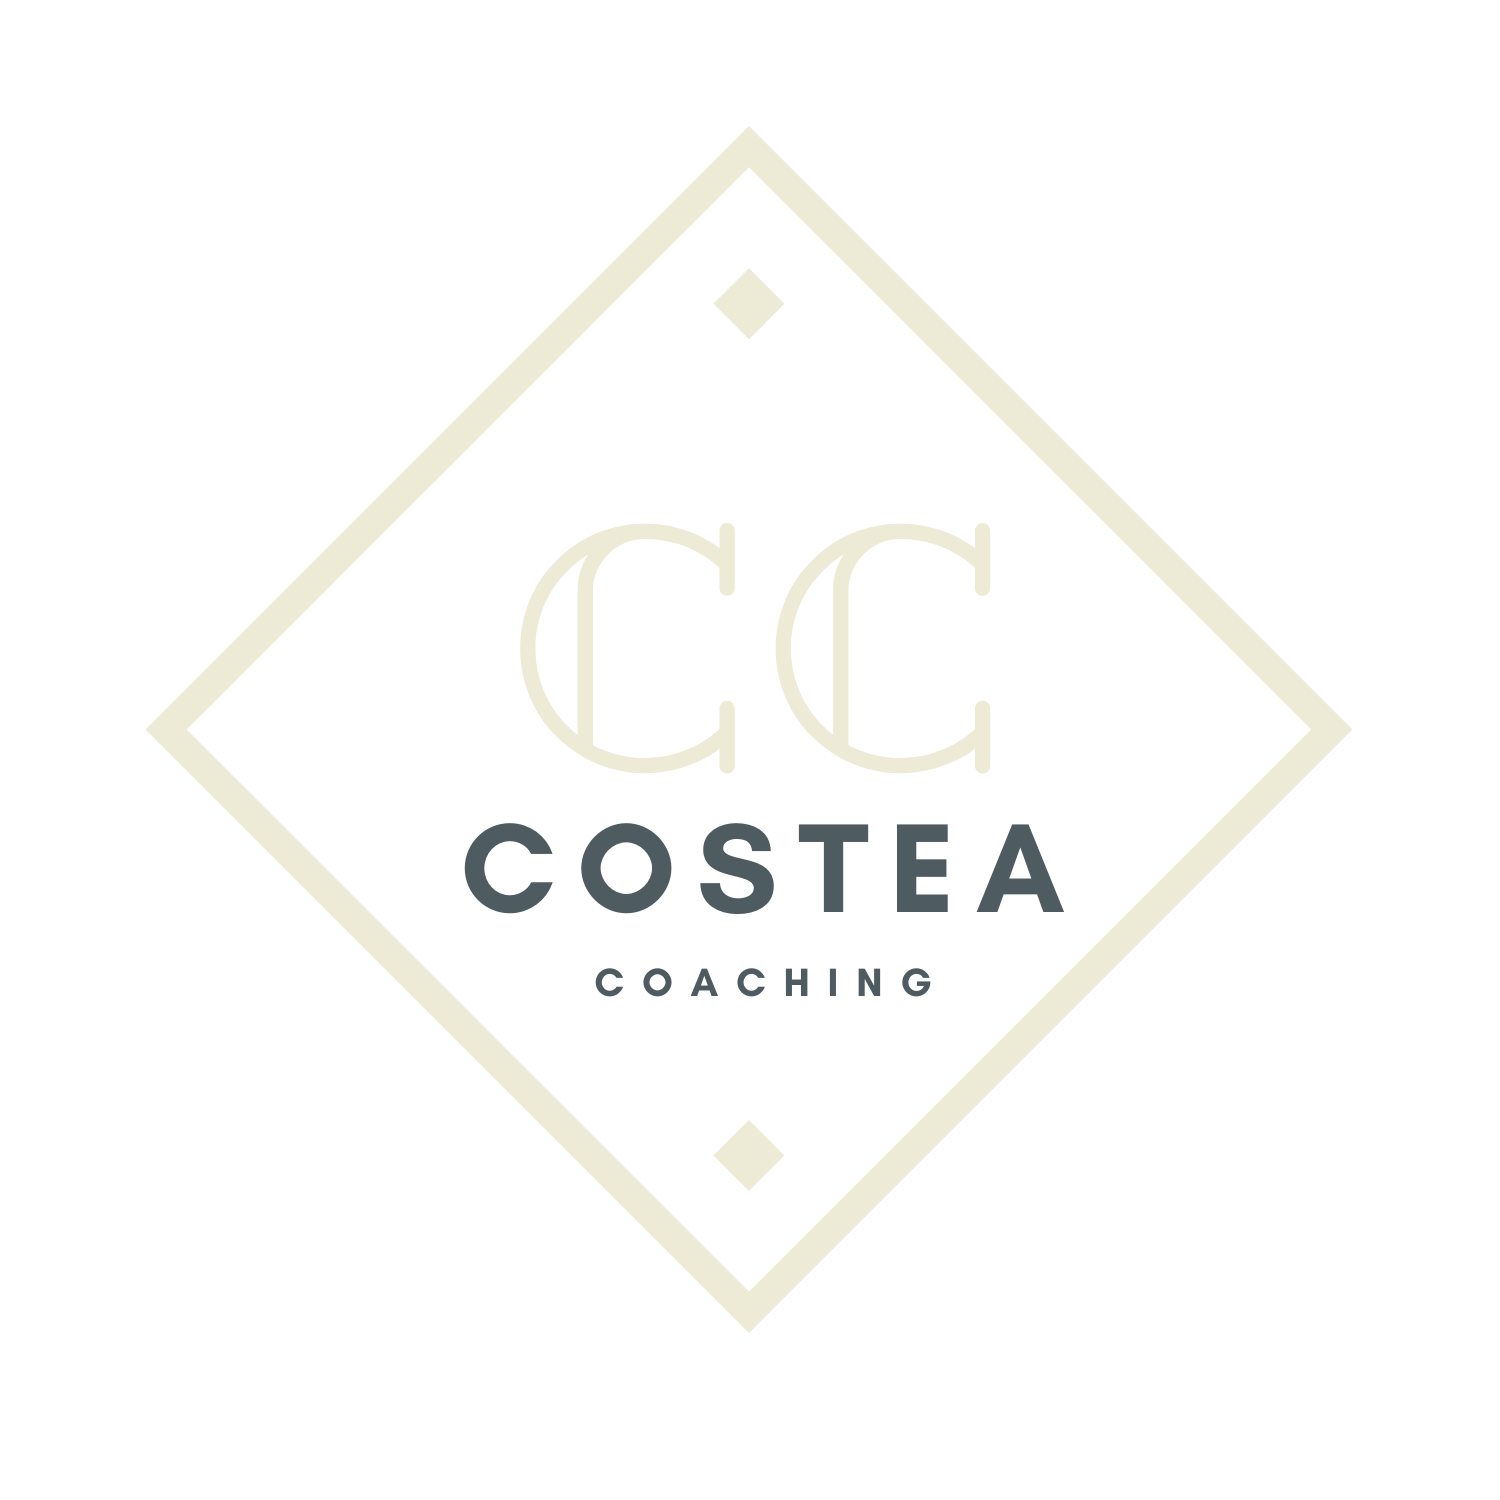 Costea Coaching